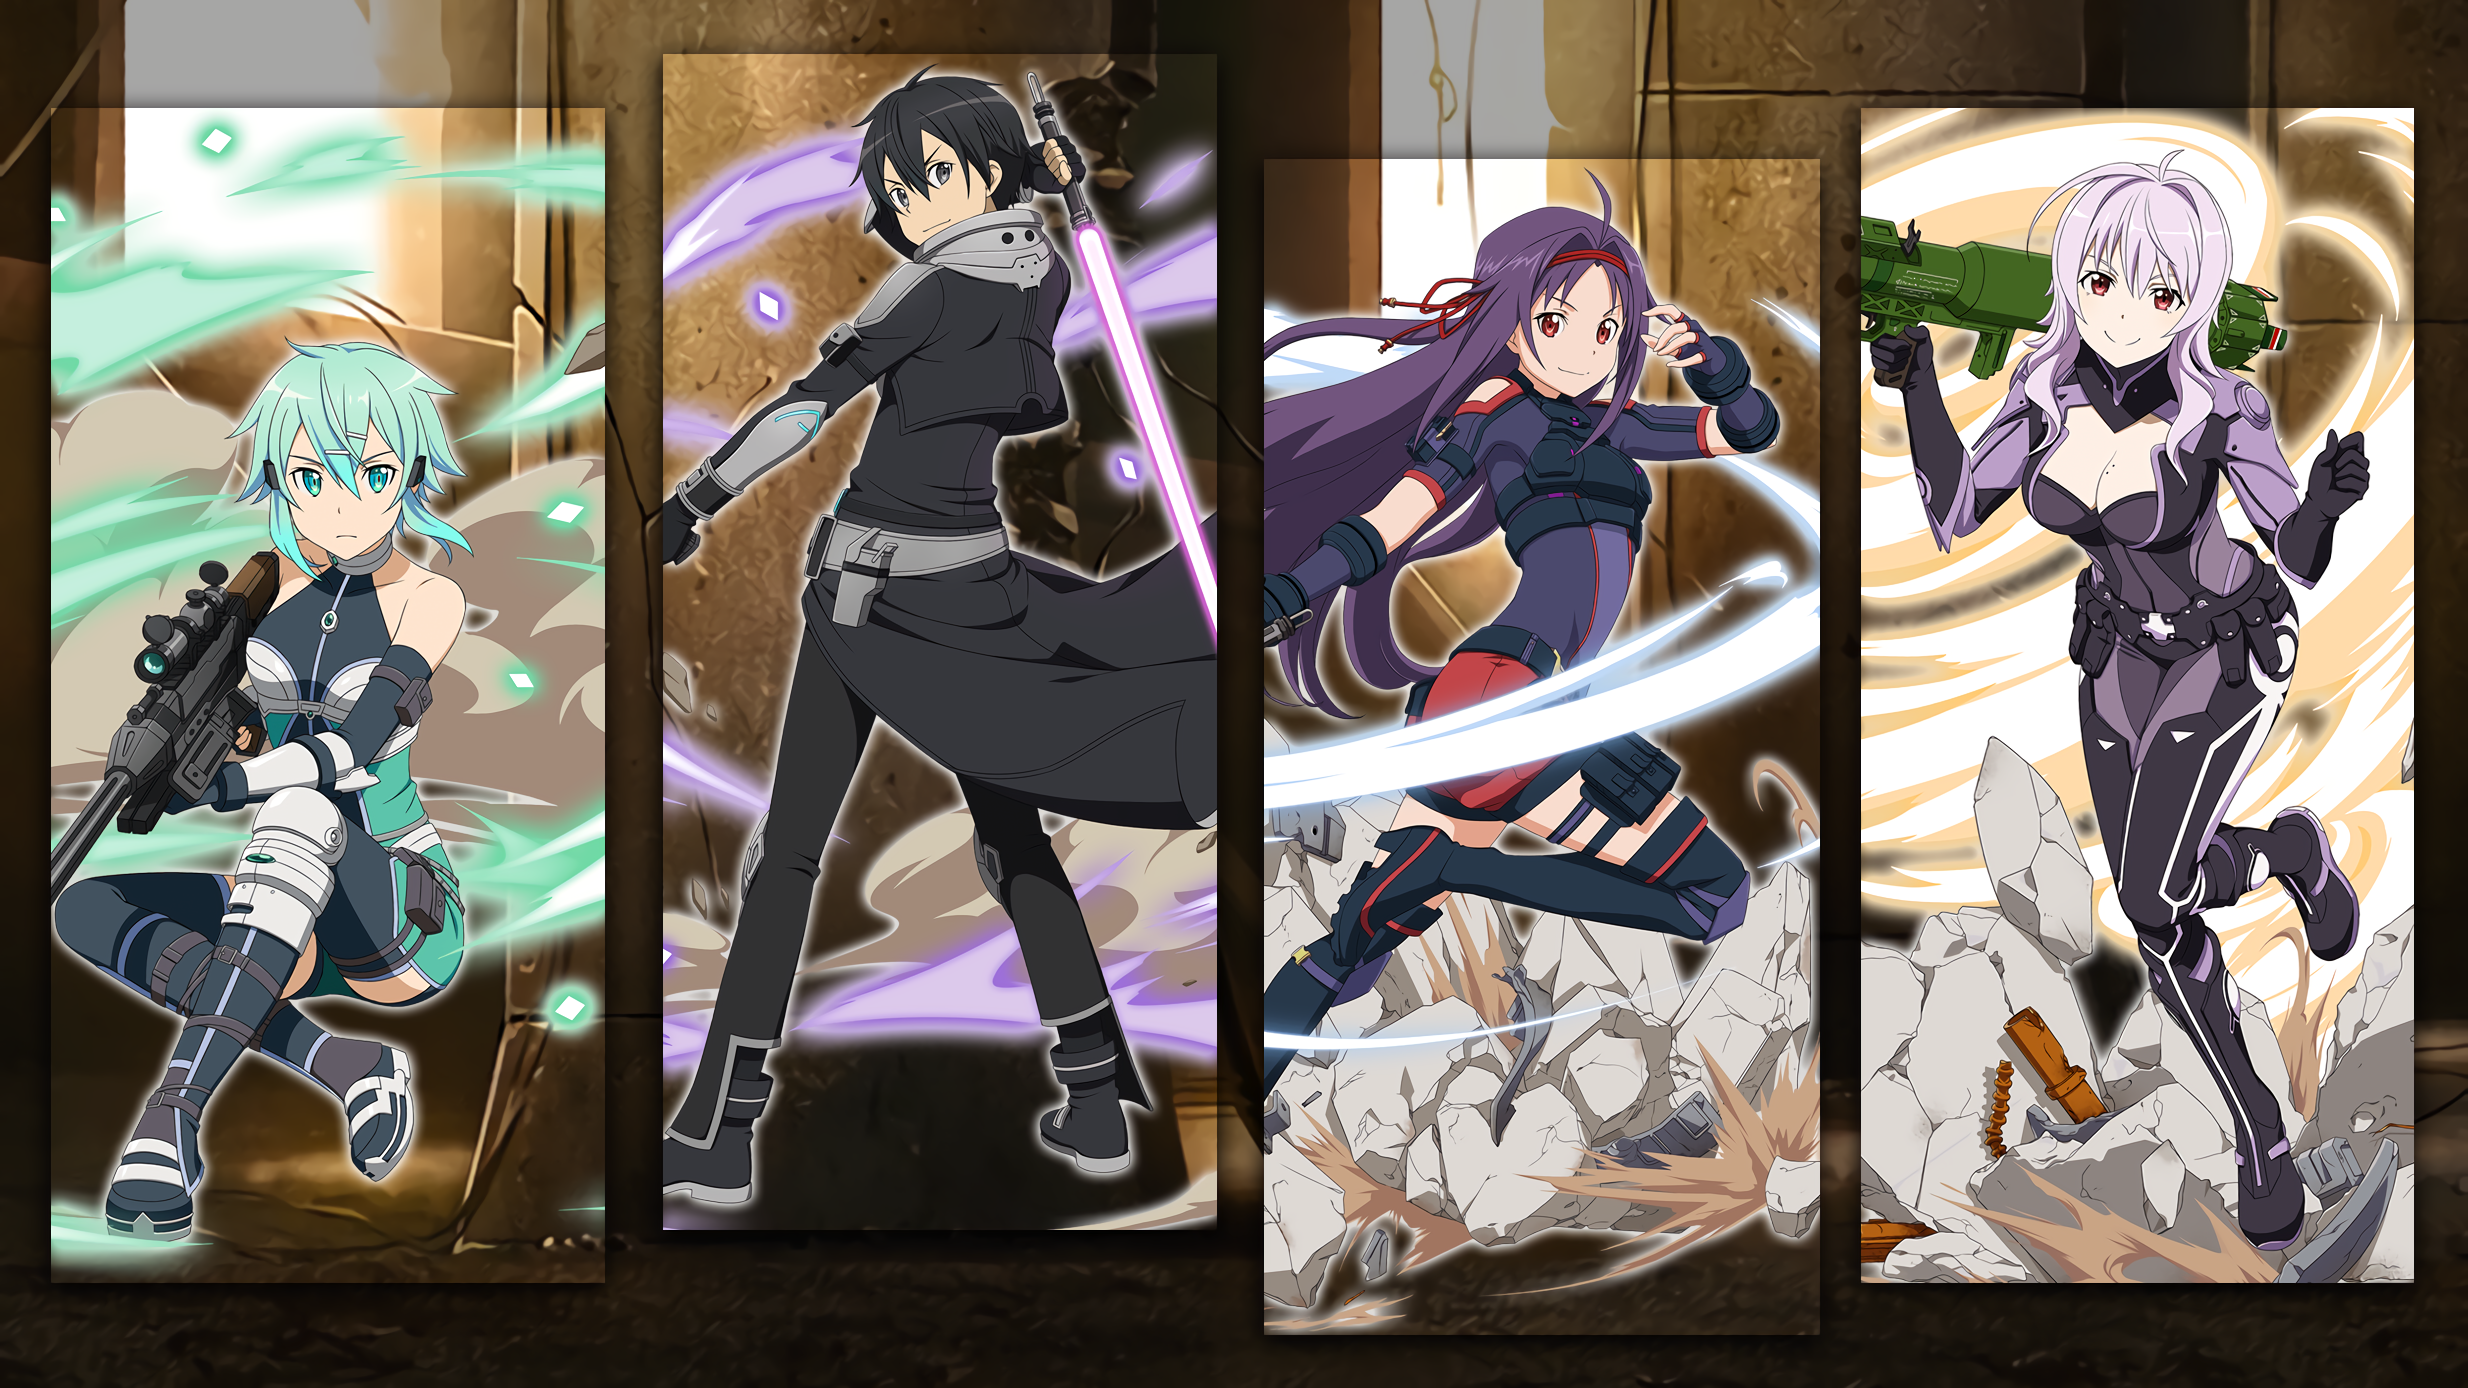 Memory Defrag Fellow Soldiers Banner Hd Wallpaper Background